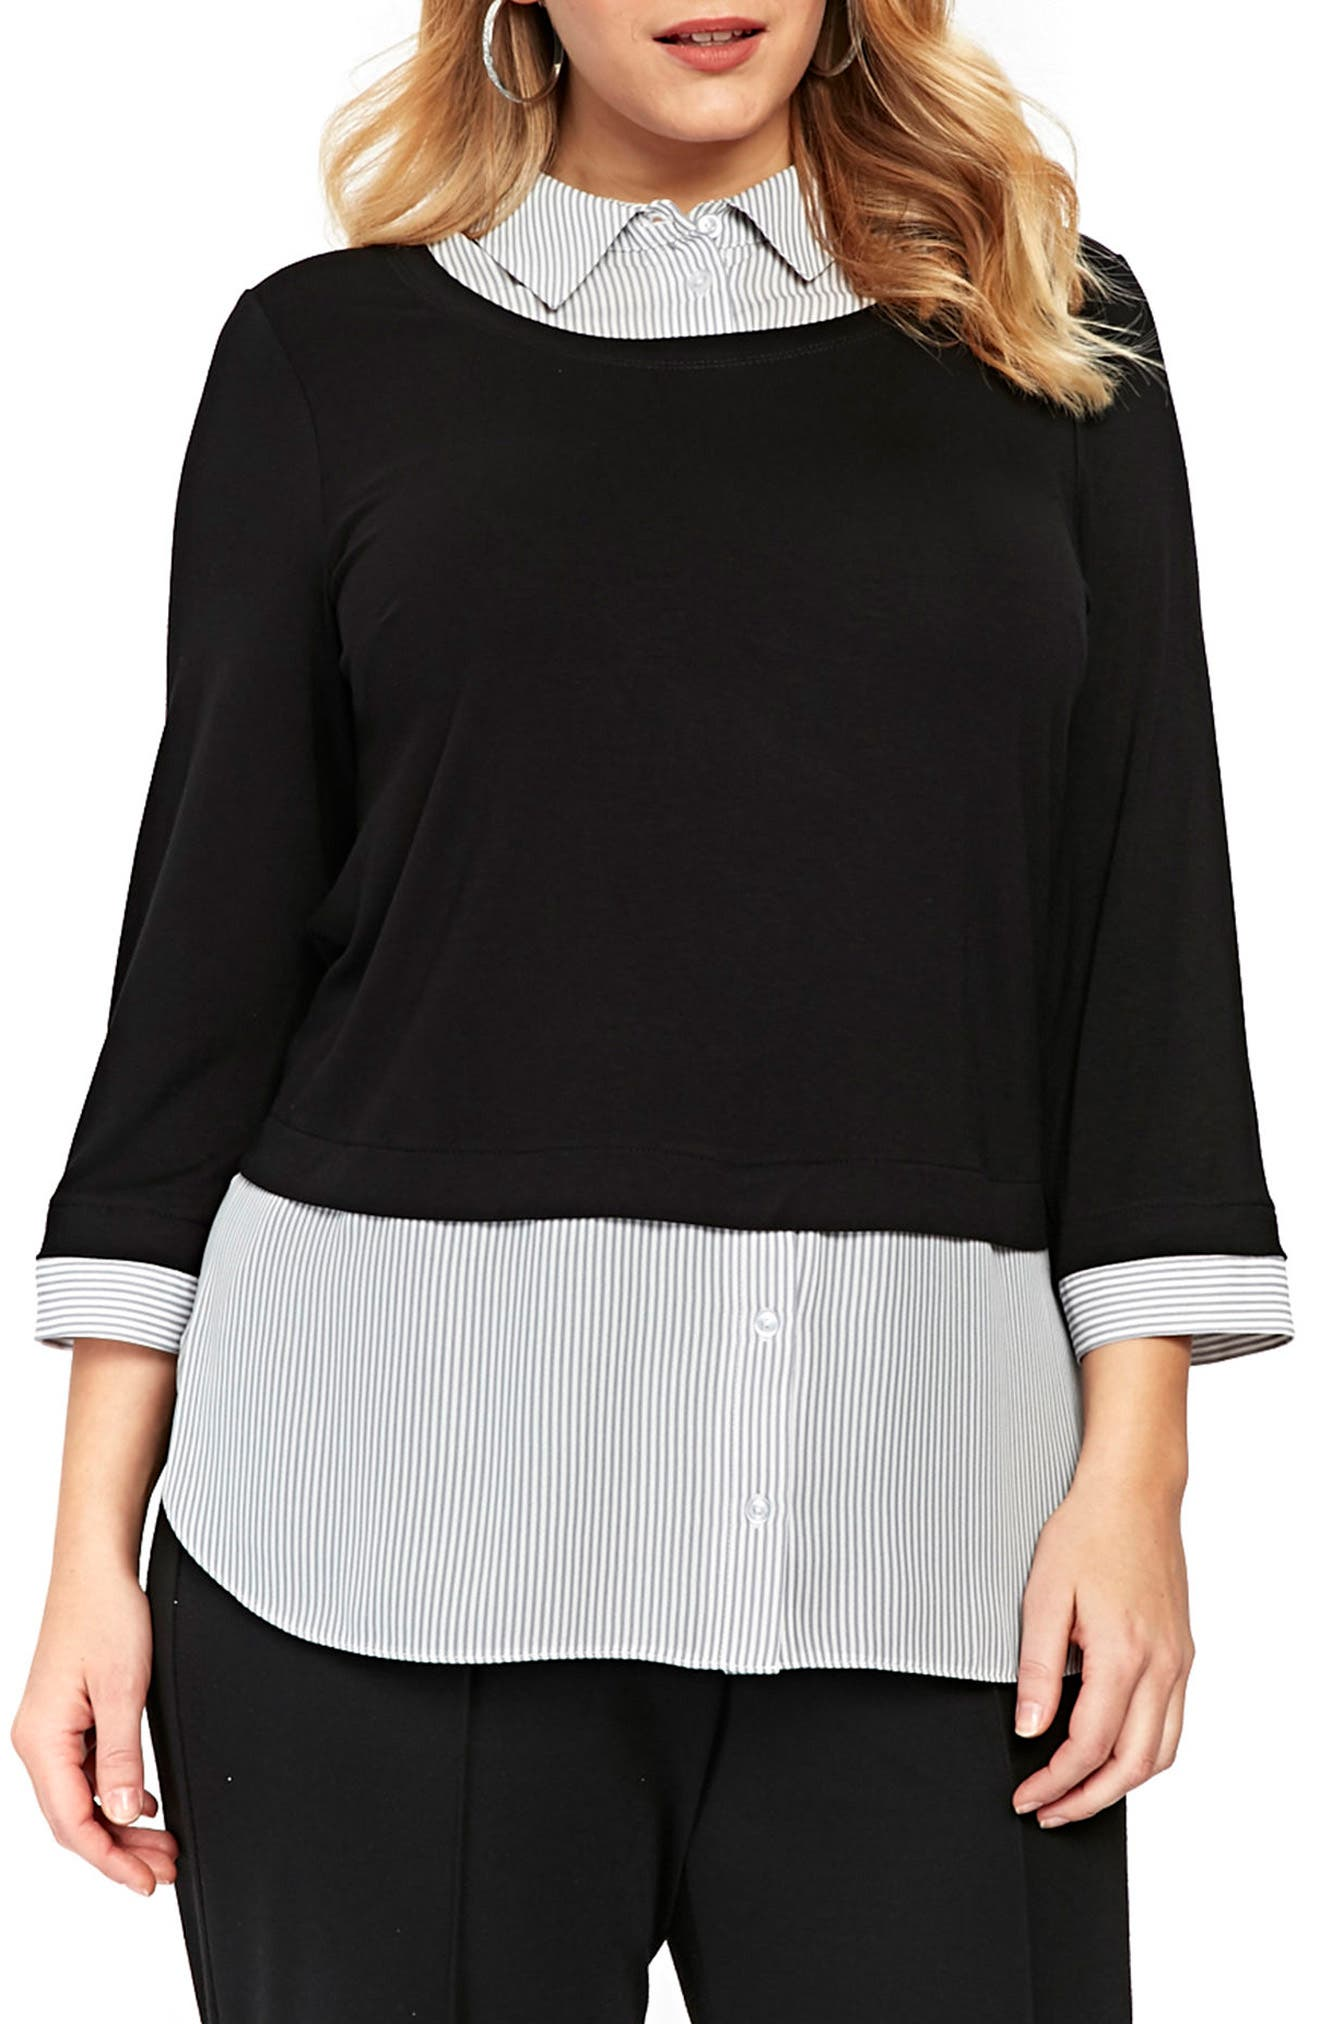 Evans Stripe & Solid 2-in-1 Shirt (Plus Size)